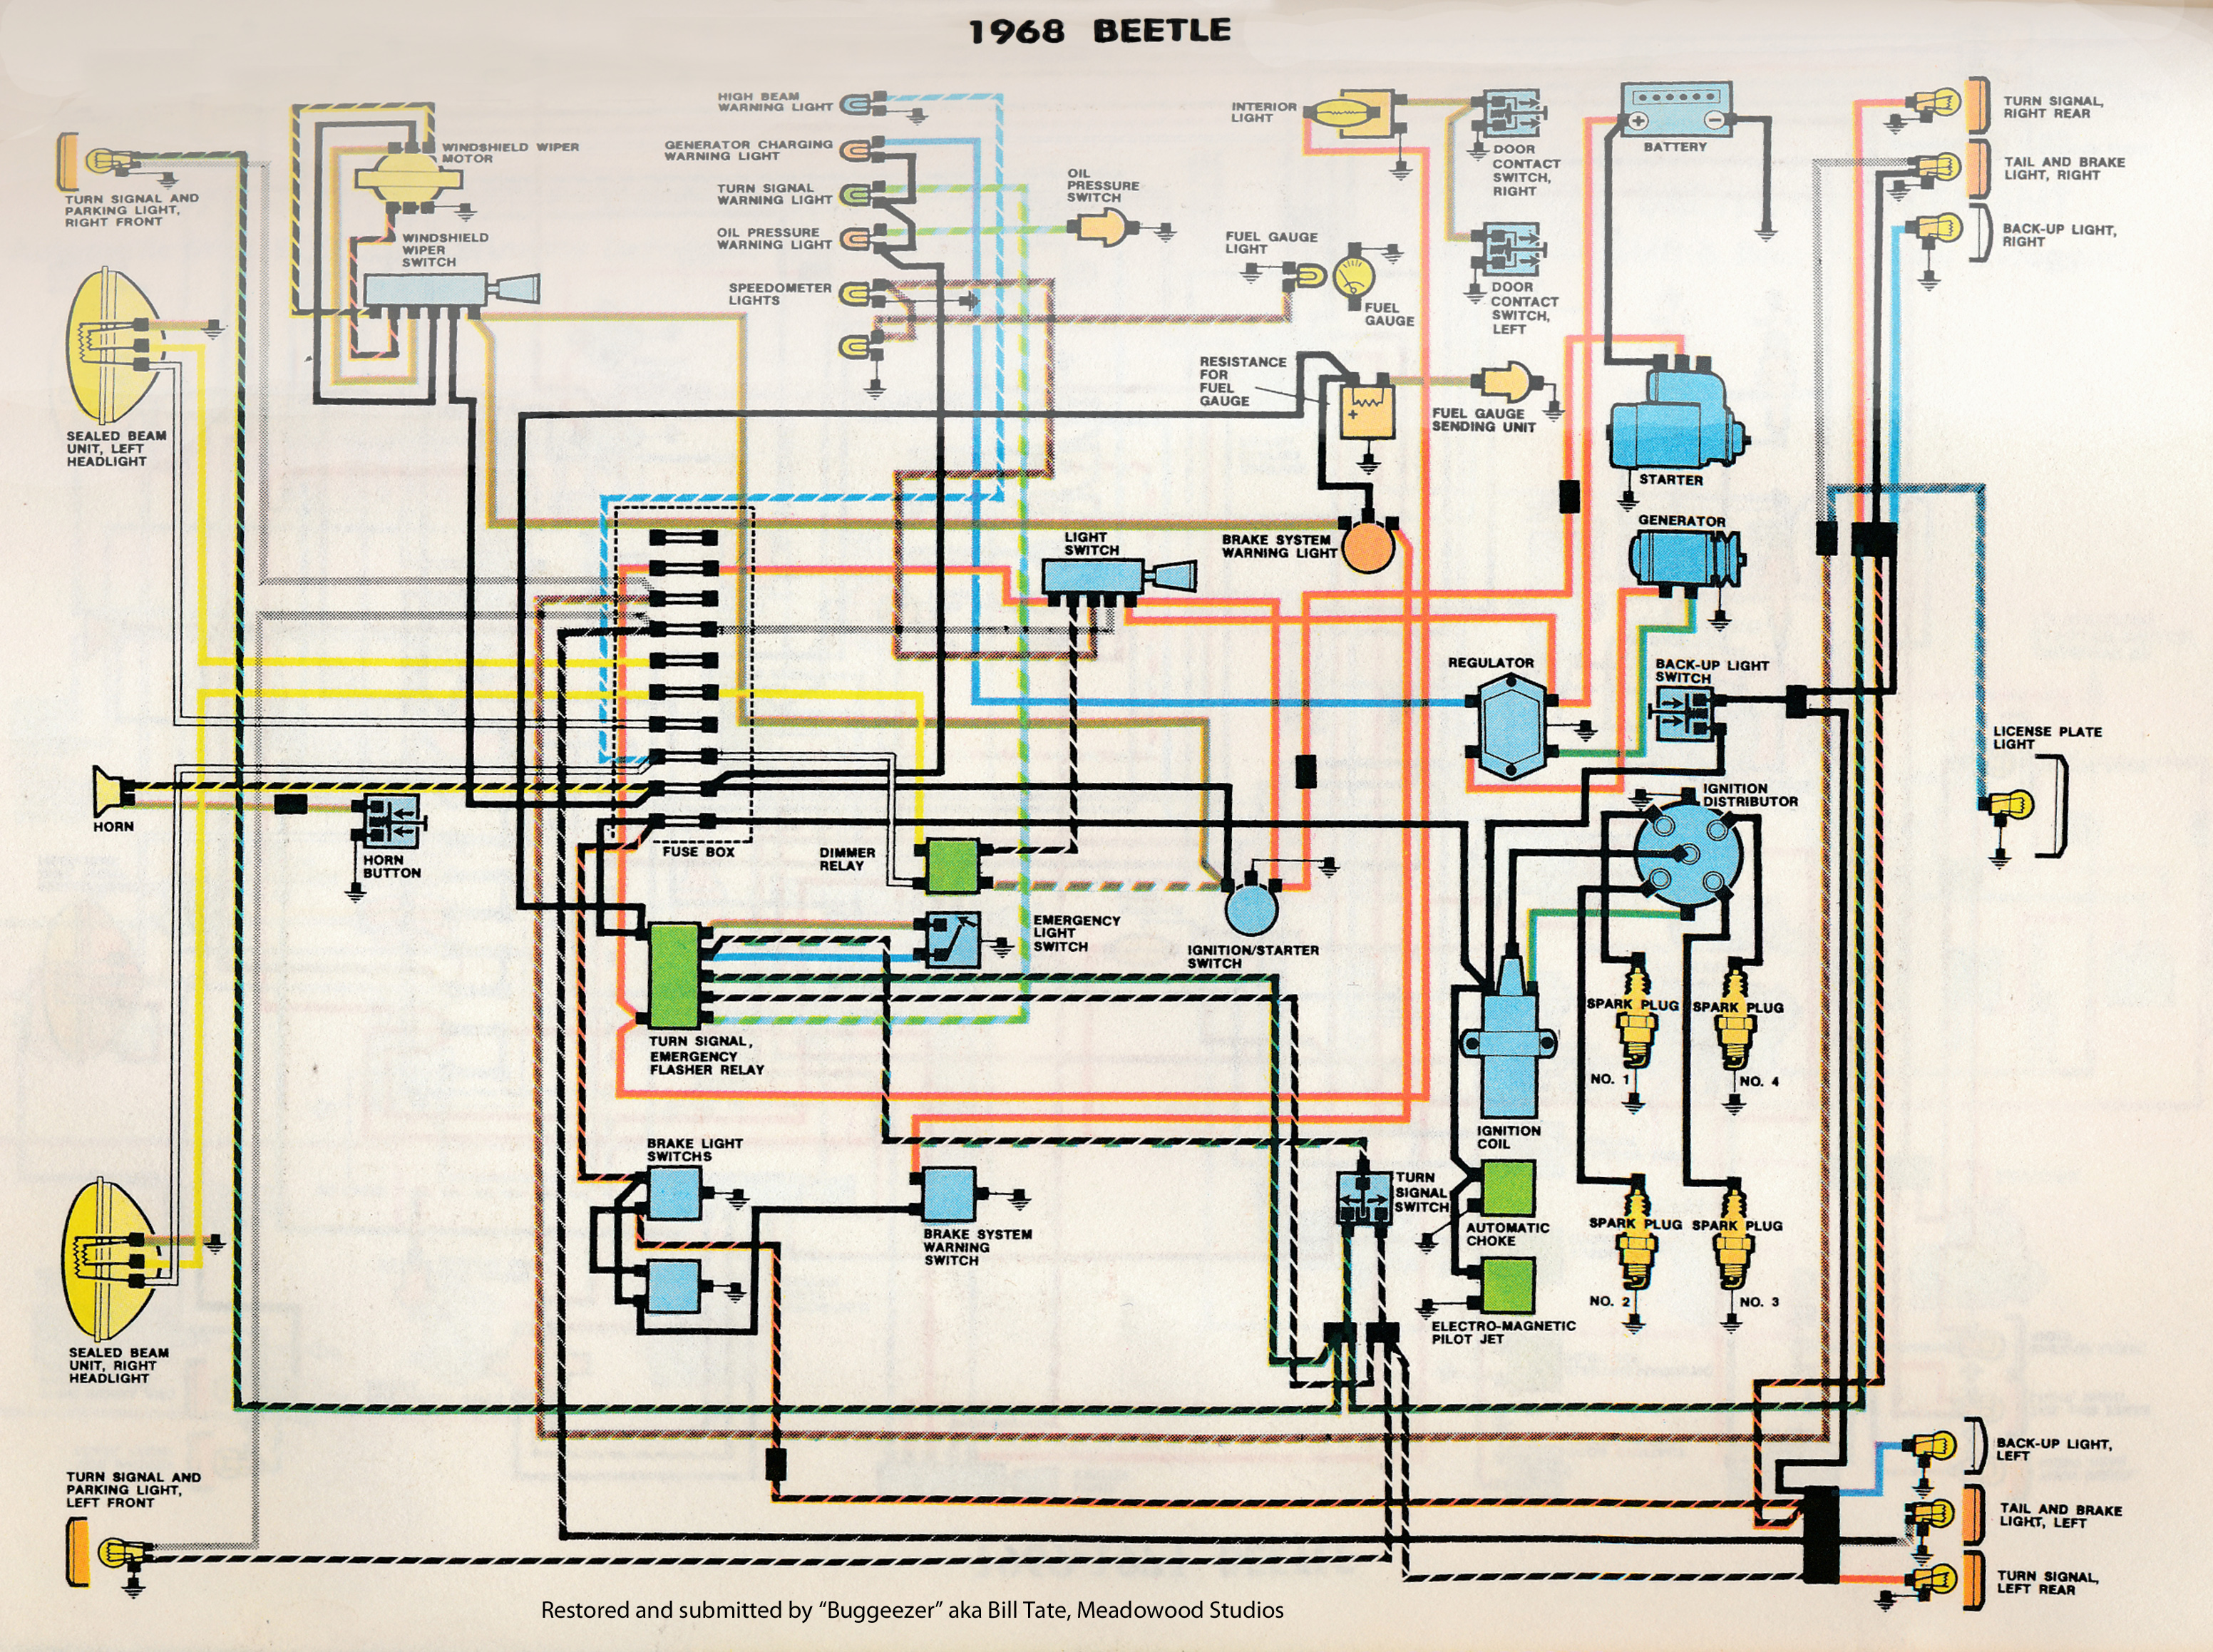 ... 1969 Beetle_1968_Clymers?resize\=665%2C496 1969 vw bug wiring diagram  1969 ford f100